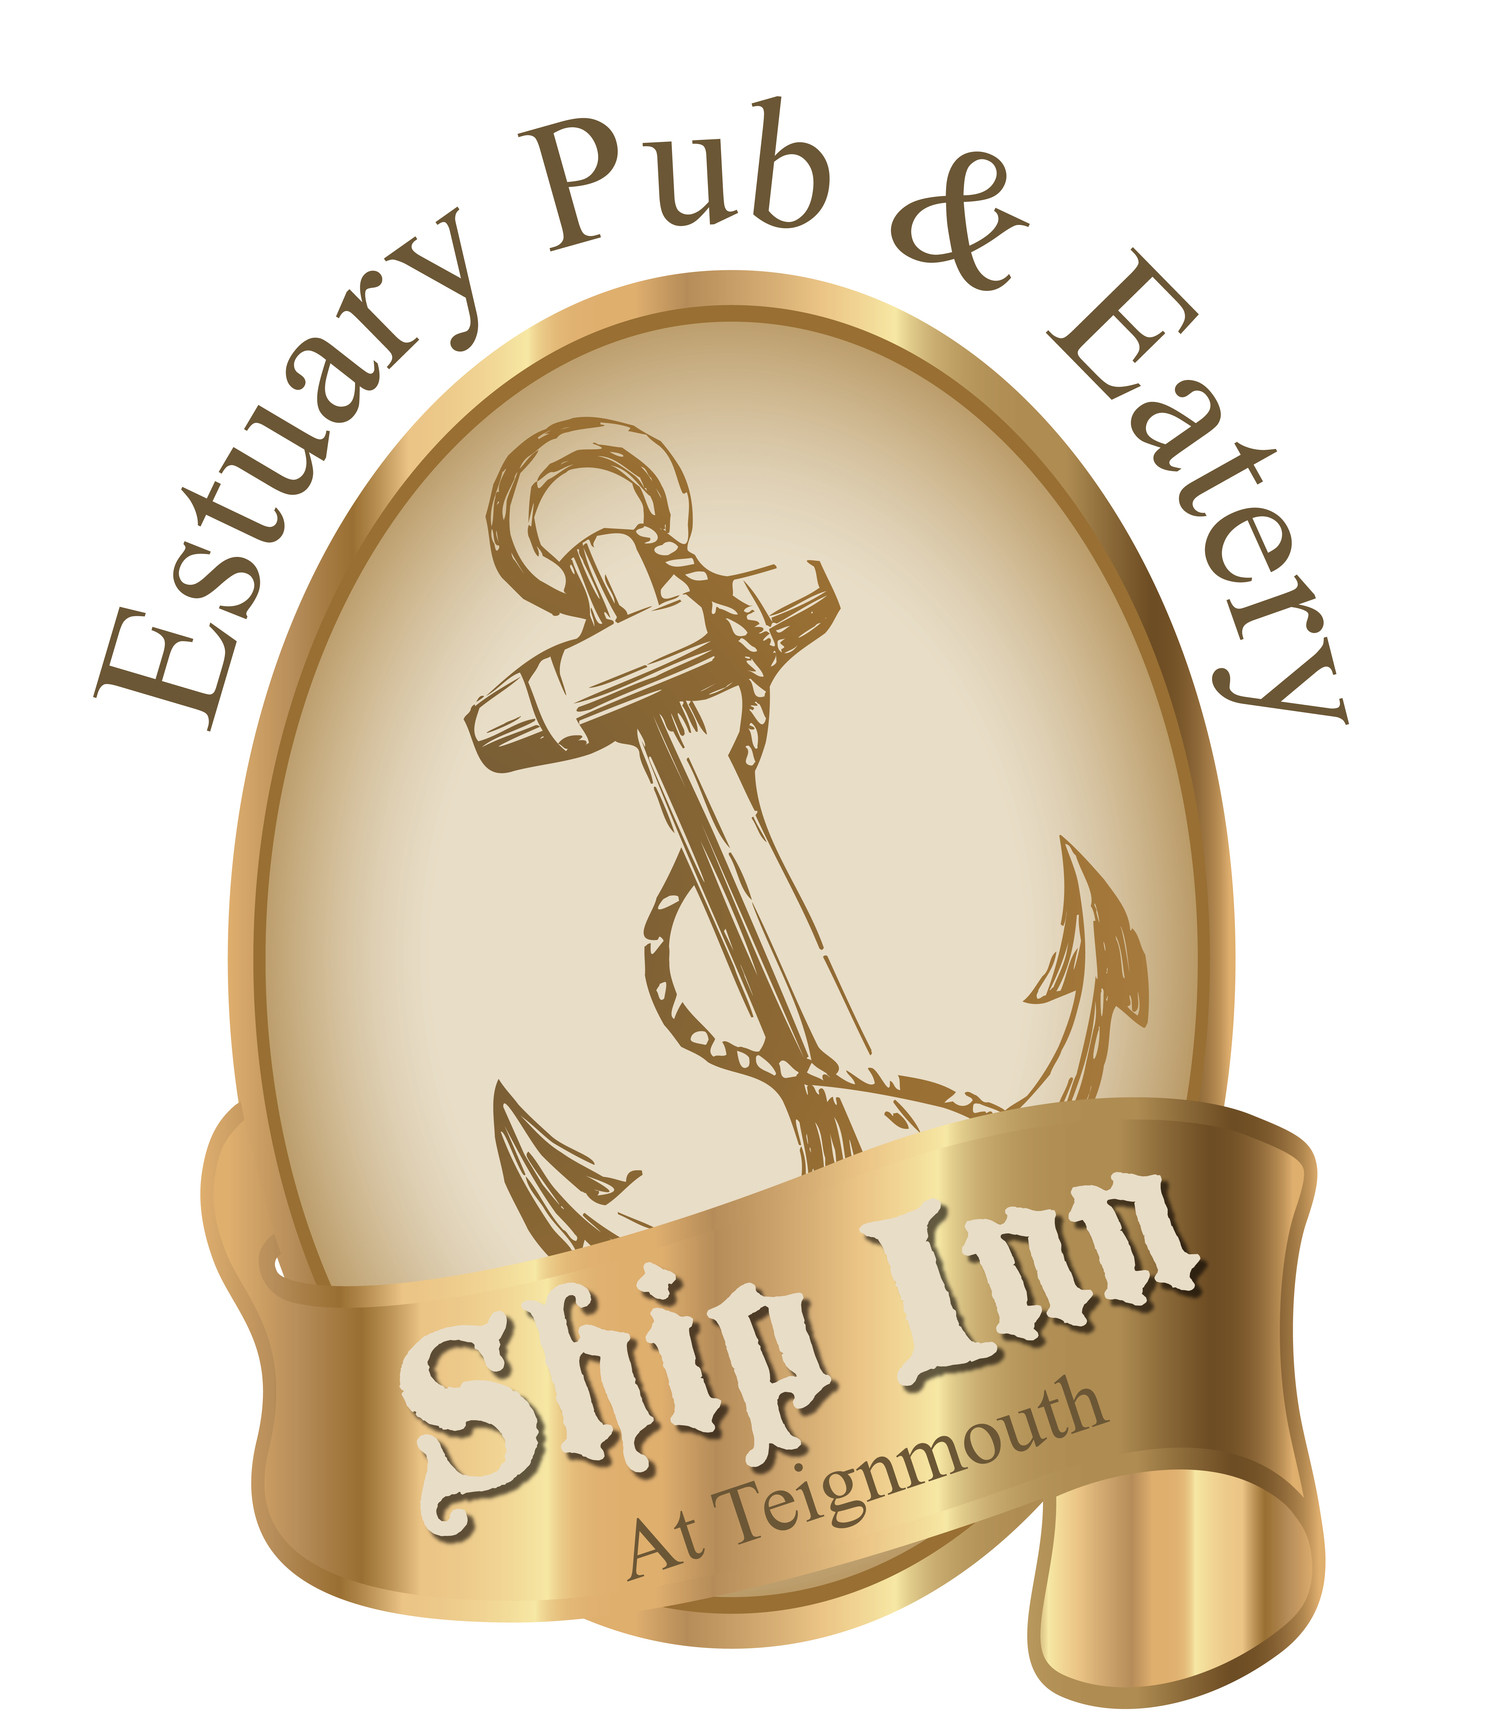 The Ship Inn - Teignmouth Estuary Bar & Eatery